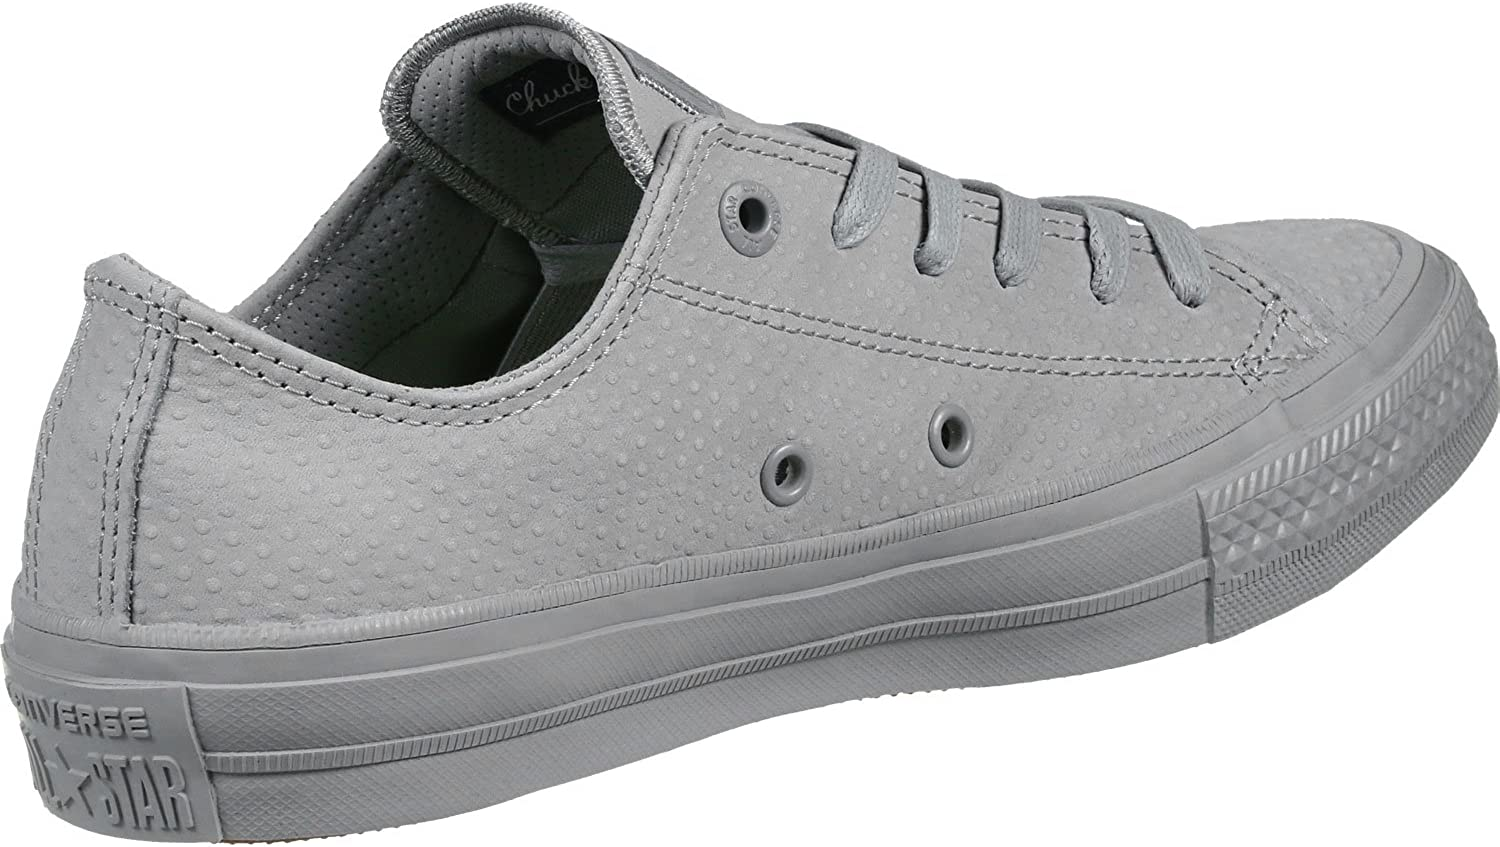 Converse All Star II Ox shoes